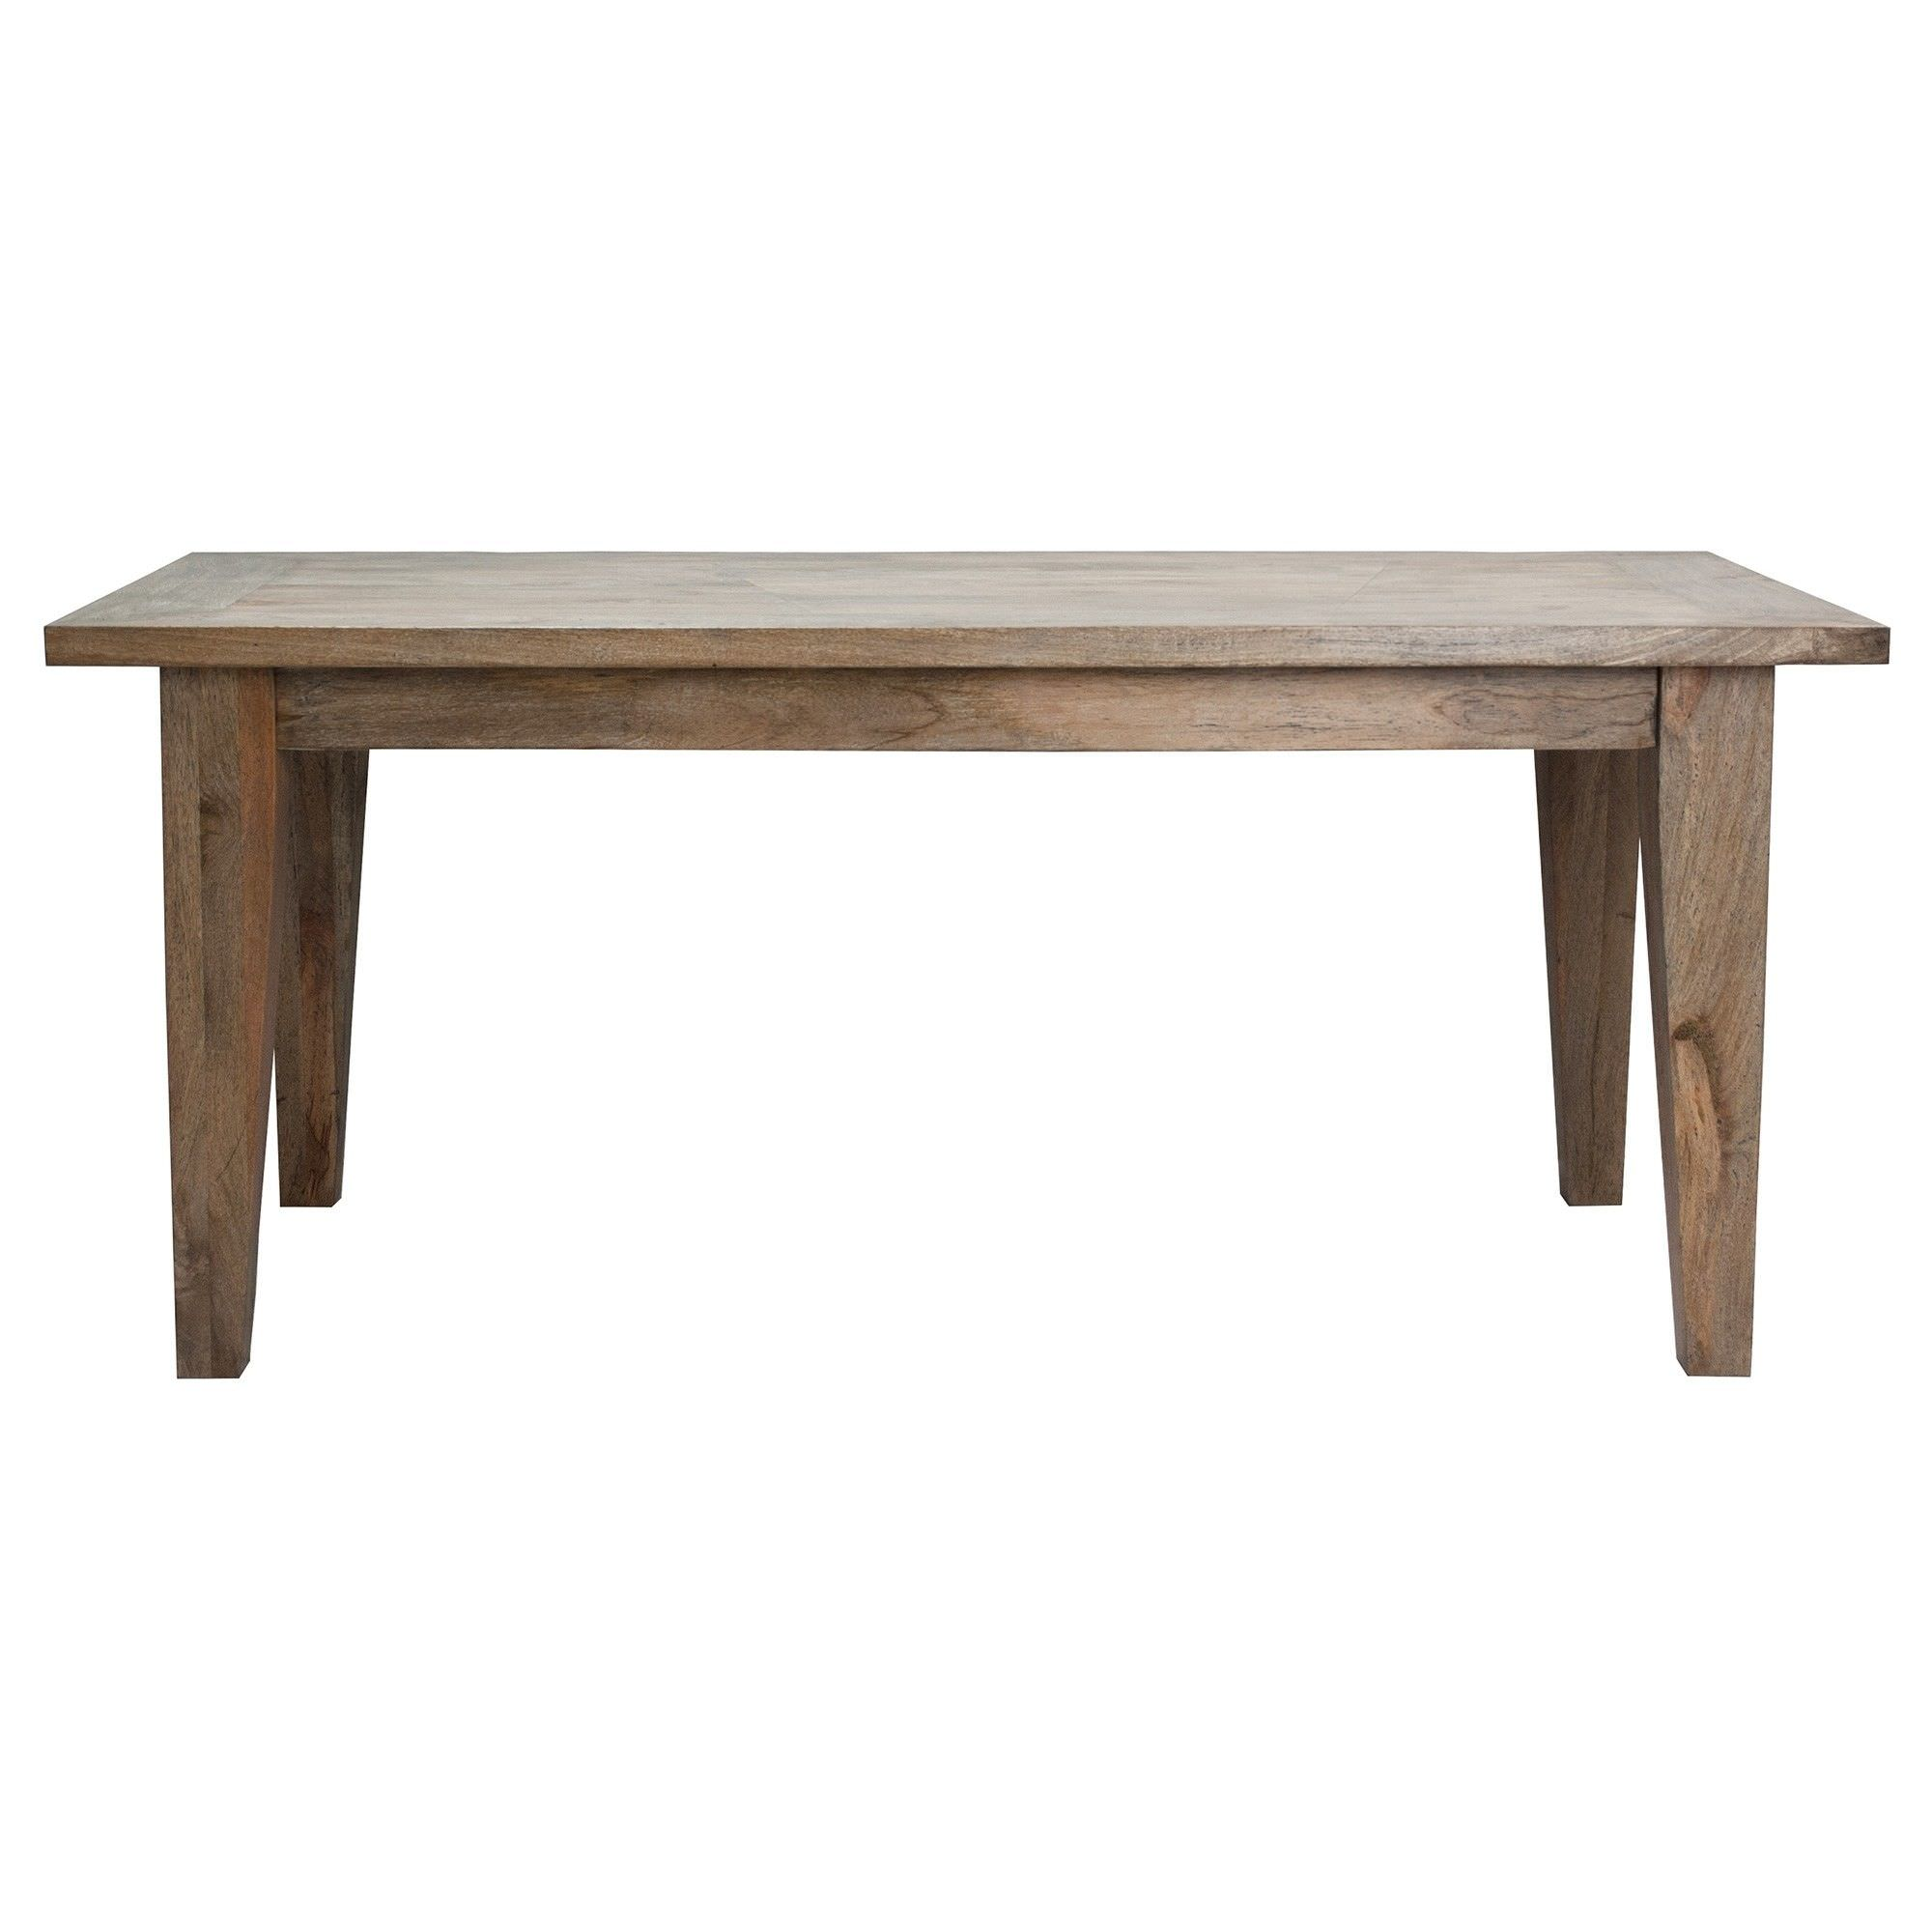 Kilmersdon Mango Wood Dining Table, 220cm